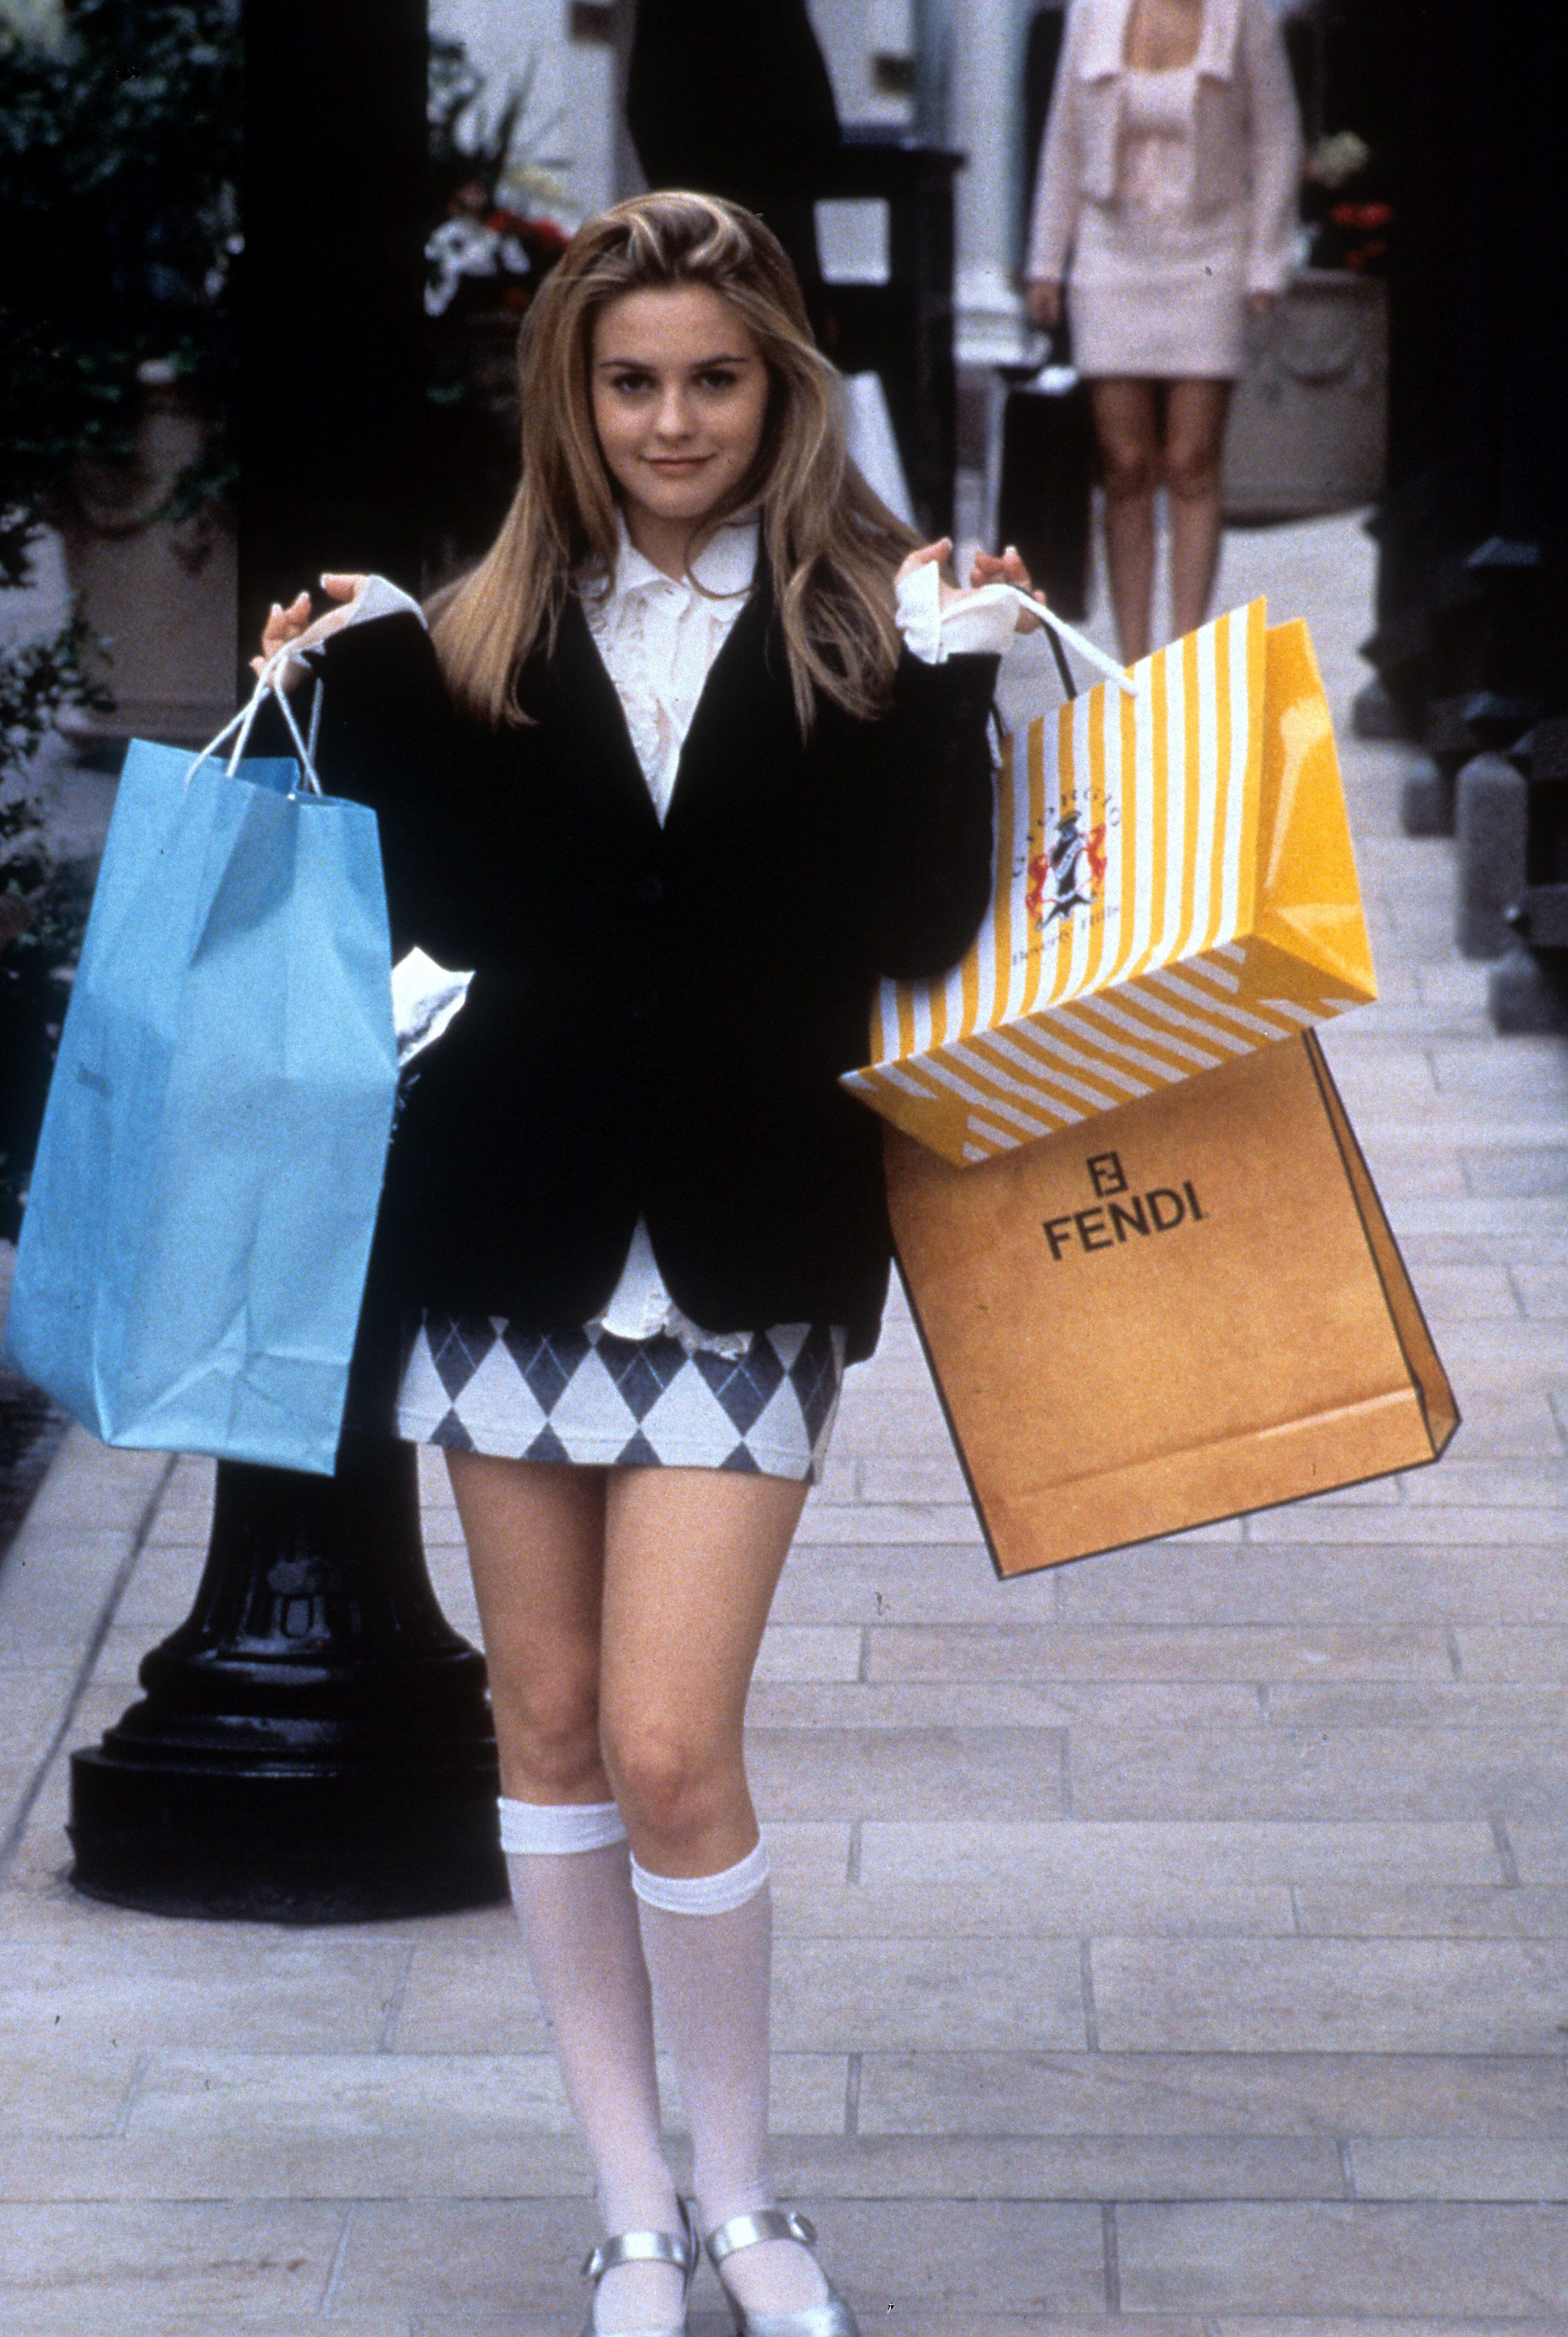 Alicia Silverstone holding shopping bags in a scene from the film 'Clueless', 1995. (Photo by Paramount Pictures/Getty Images)